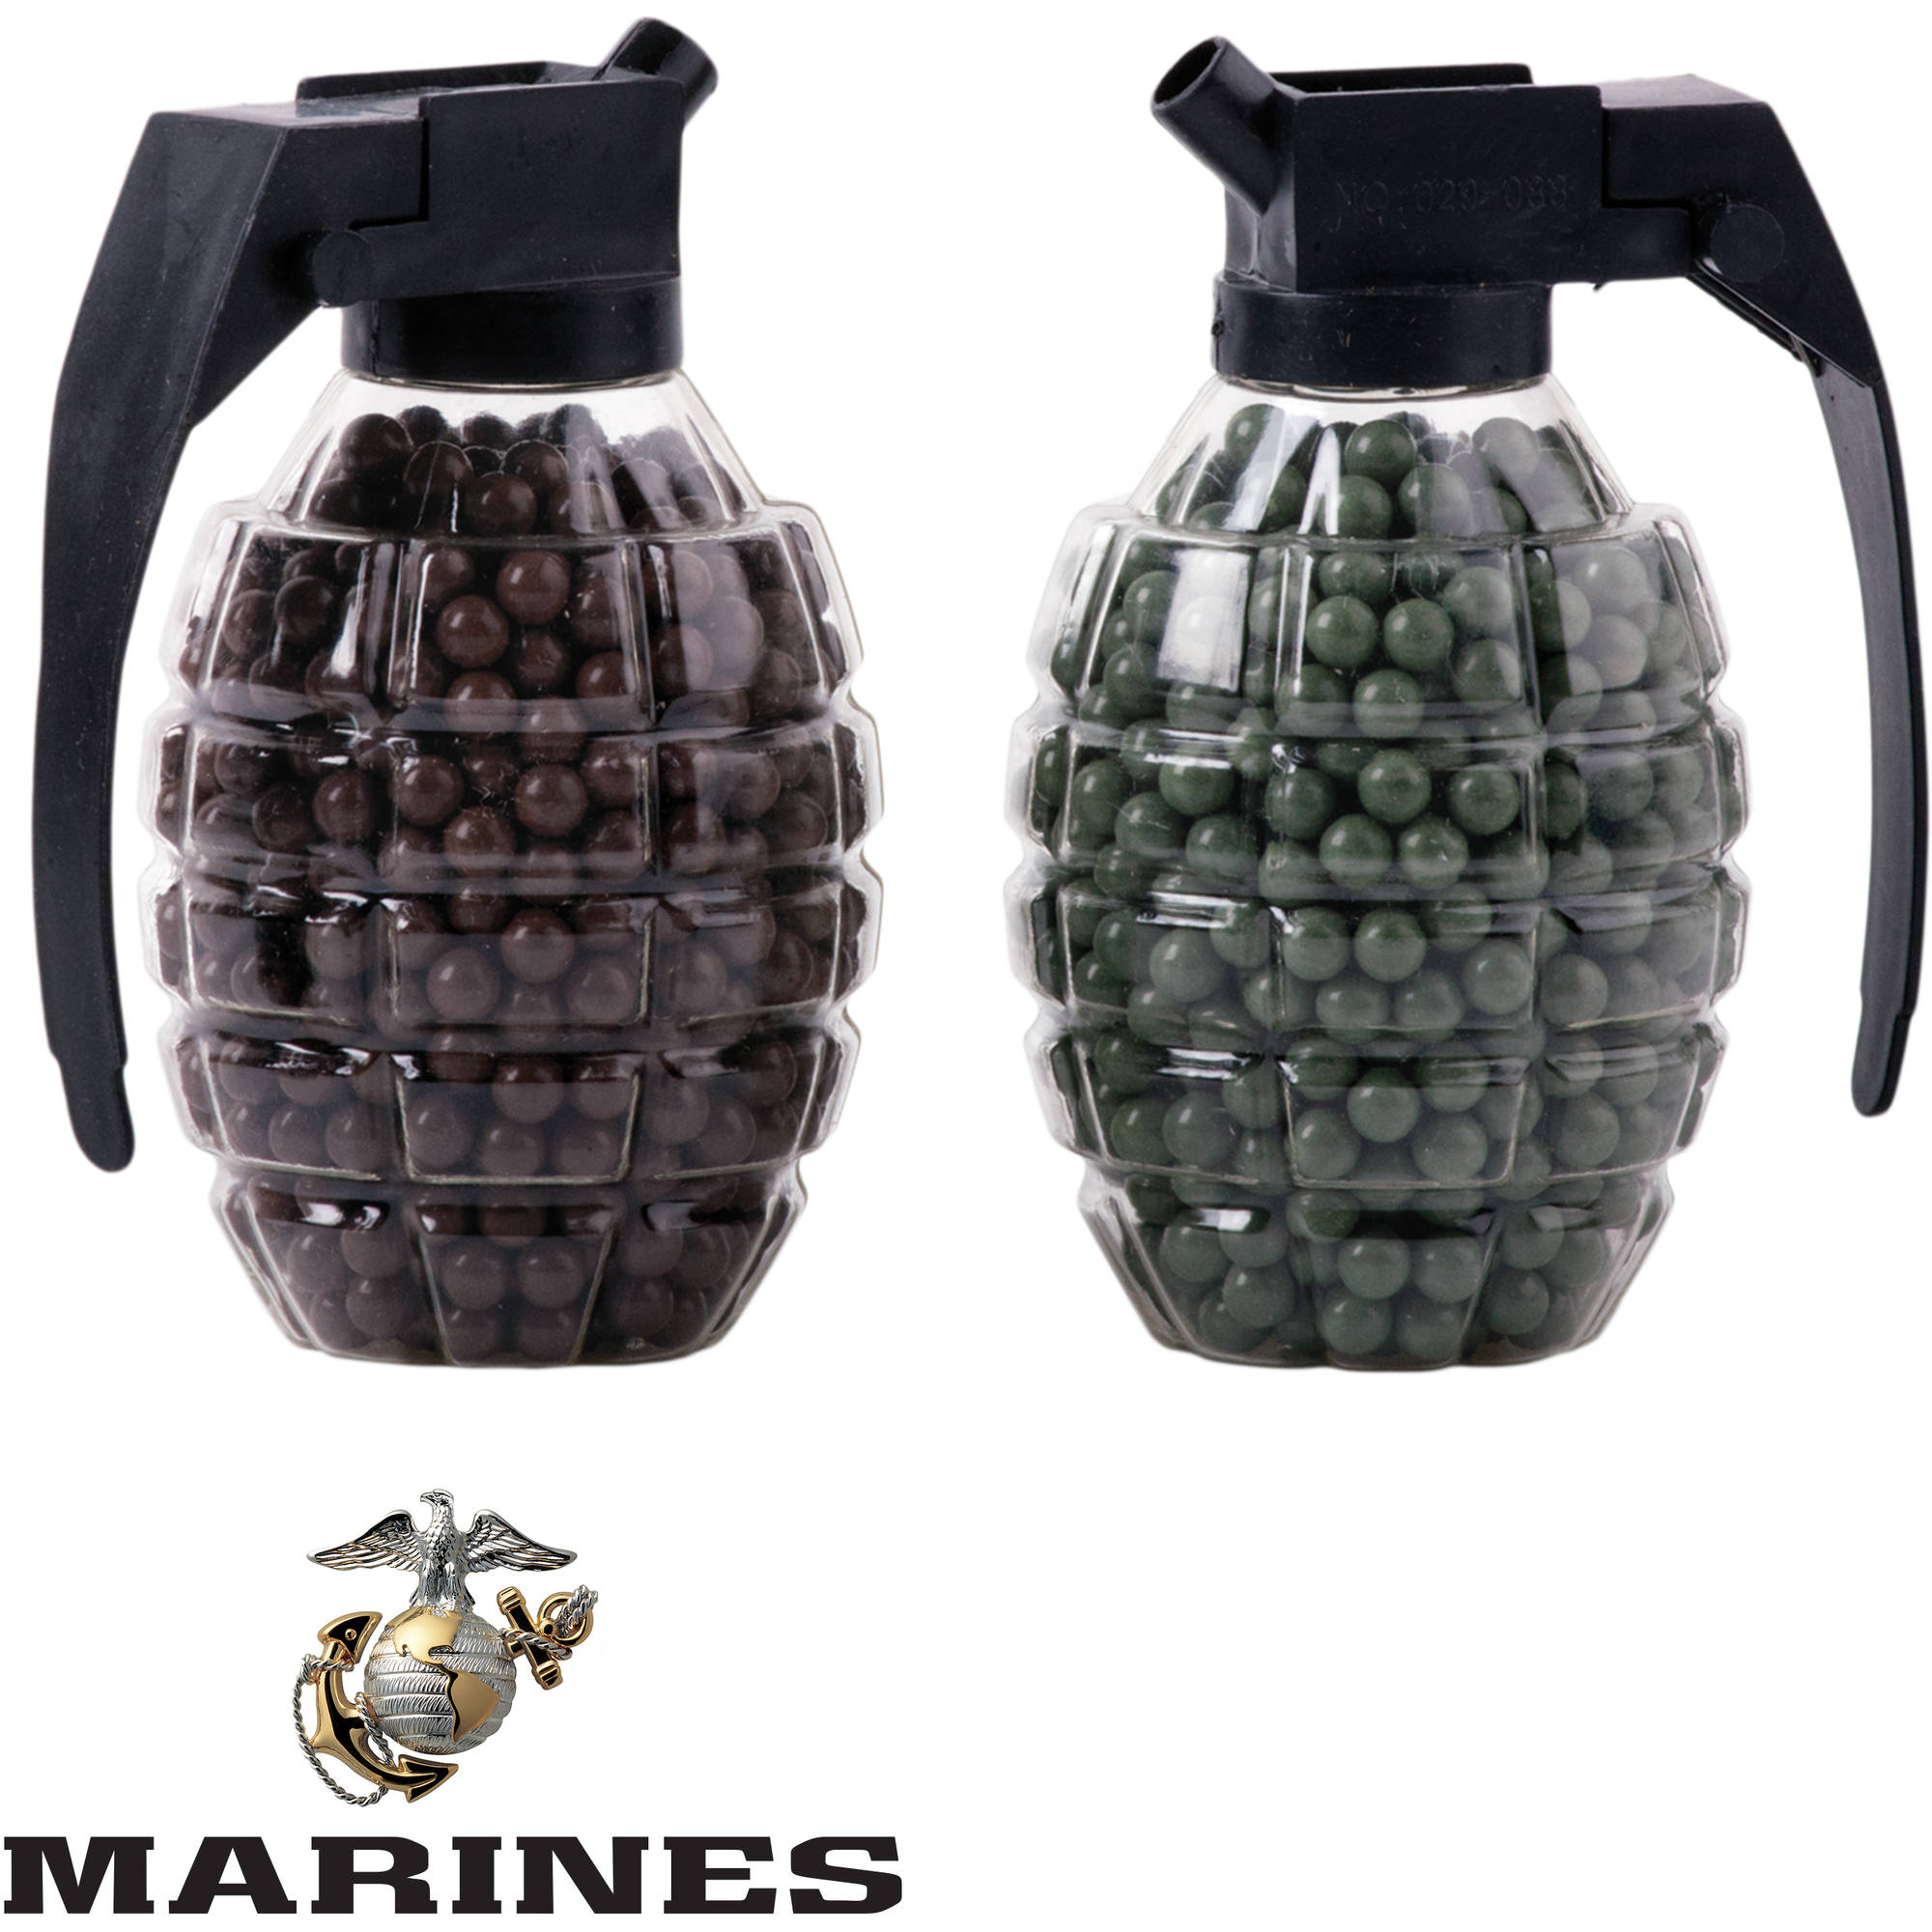 U.S. Marines by Crosman, .20 Gram Airsoft Ammo in Reusable Grenade Loaders, 1,600ct